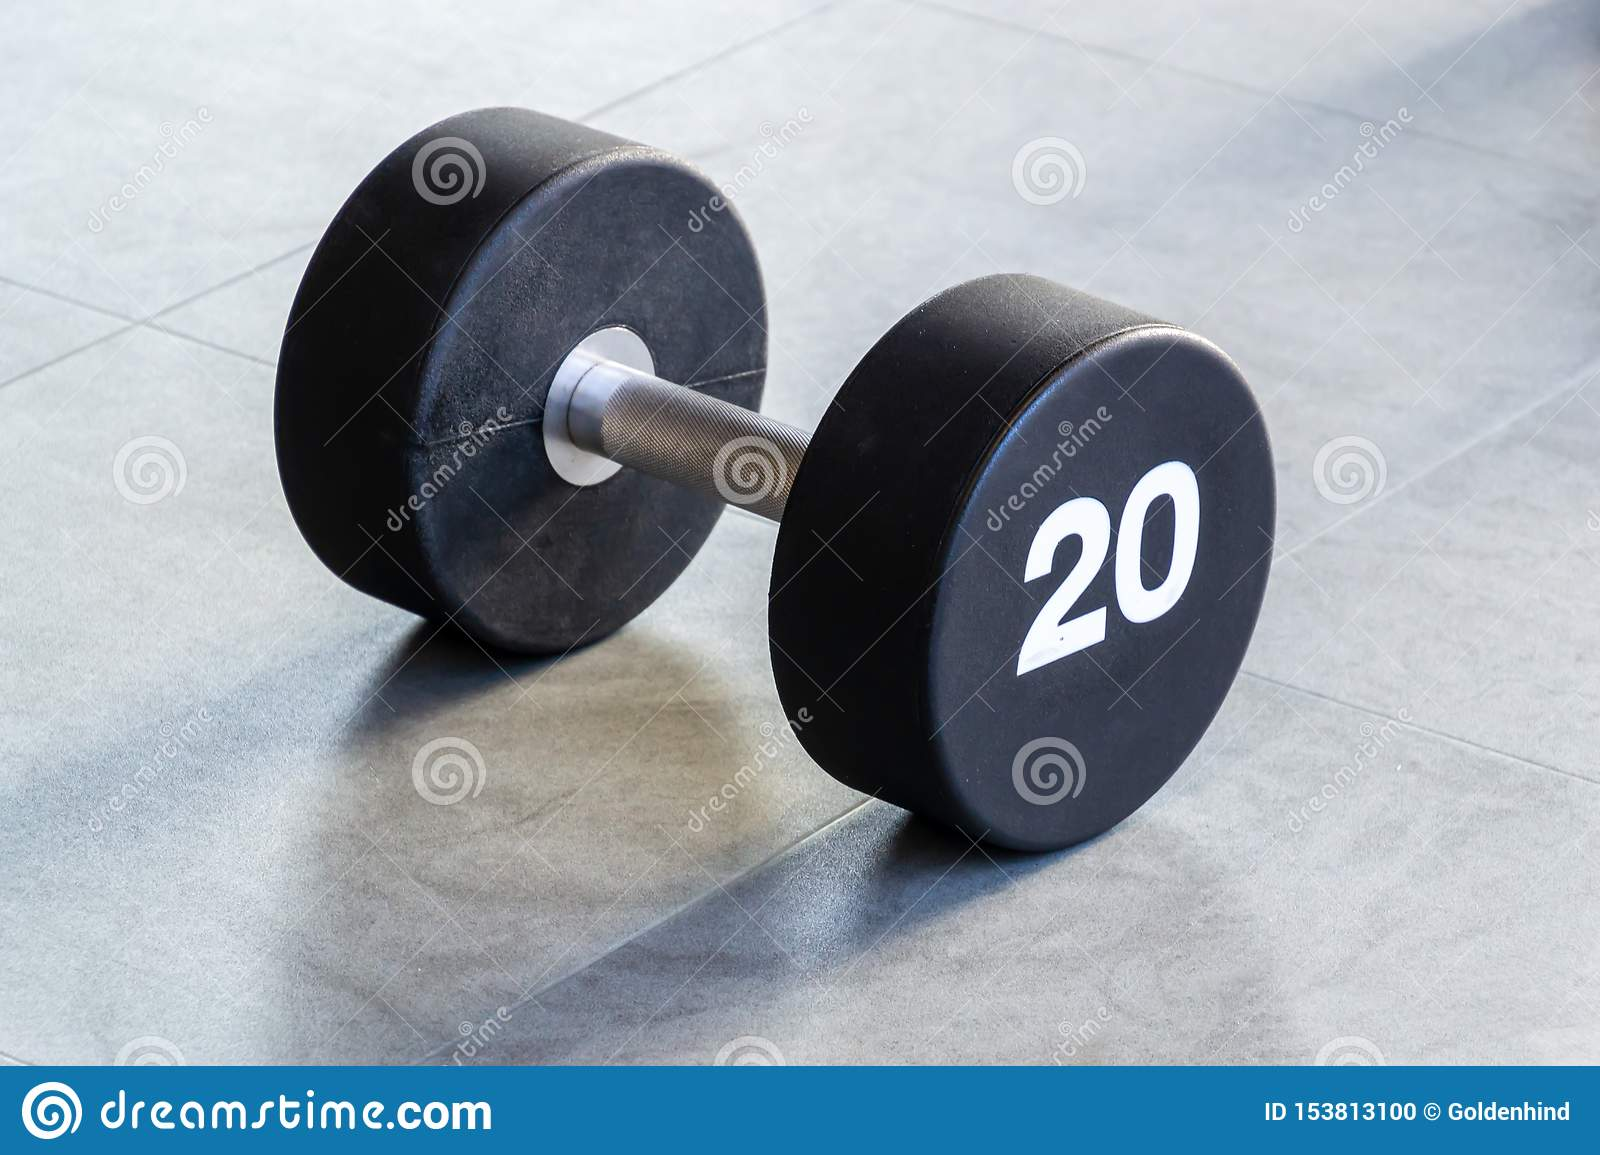 Fitness or bodybuilding concept background. Black iron dumbbell on the floor in the gym